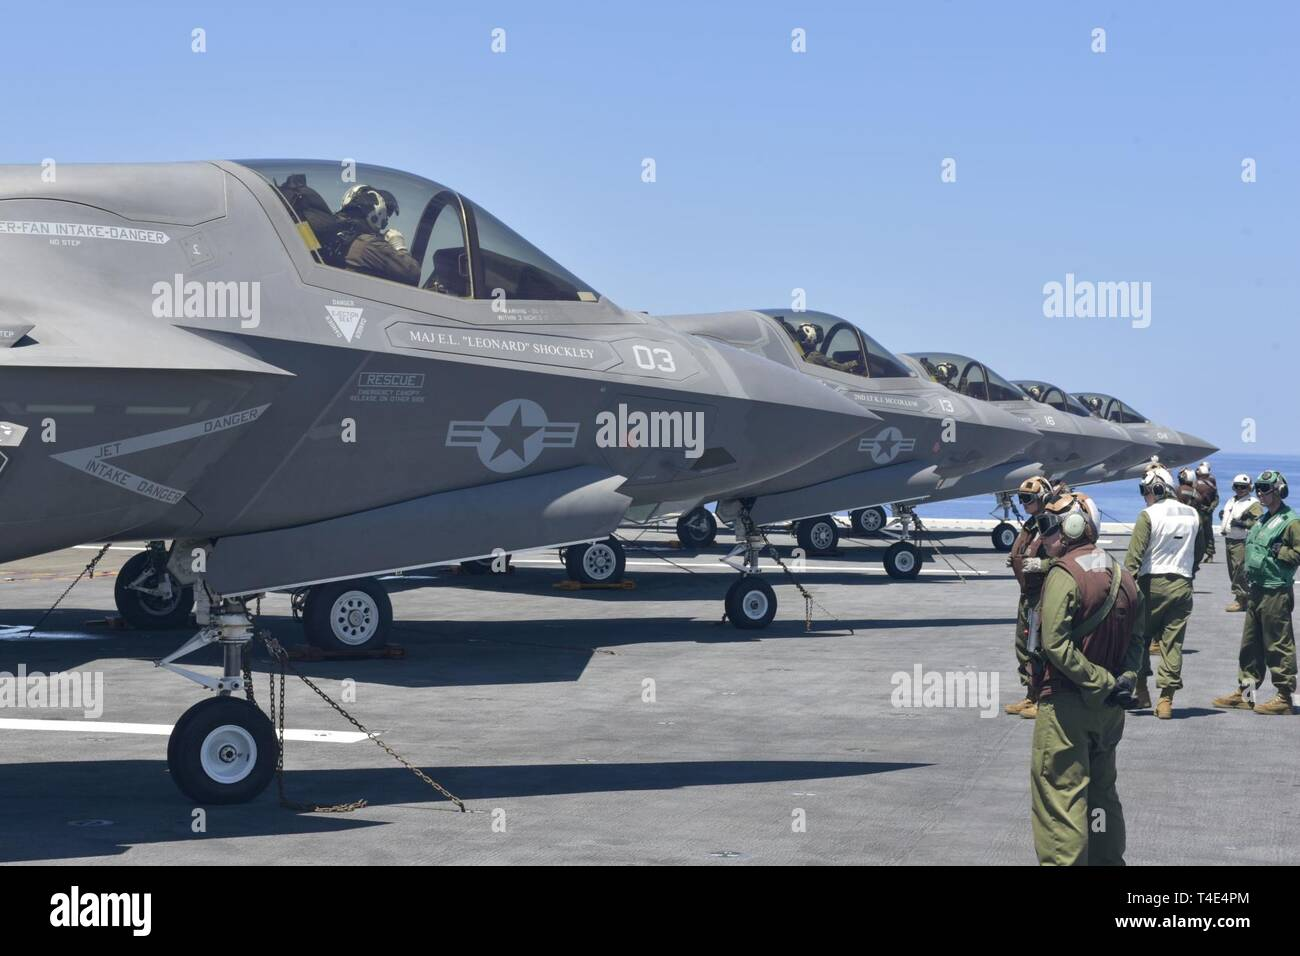 SOUTH CHINA SEA (March 29, 2019) -  Sailors and Marines prepare F-35B Lightning II aircraft assigned to Marine Fighter Attack Squadron (VMFA) 121 for flight operations aboard the amphibious assault ship USS Wasp (LHD 1). Wasp, flagship of Wasp Amphibious Ready Group, is operating in the Indo-Pacific region to enhance interoperability with partners and serve as a lethal, ready-response force for any type of contingency. - Stock Image